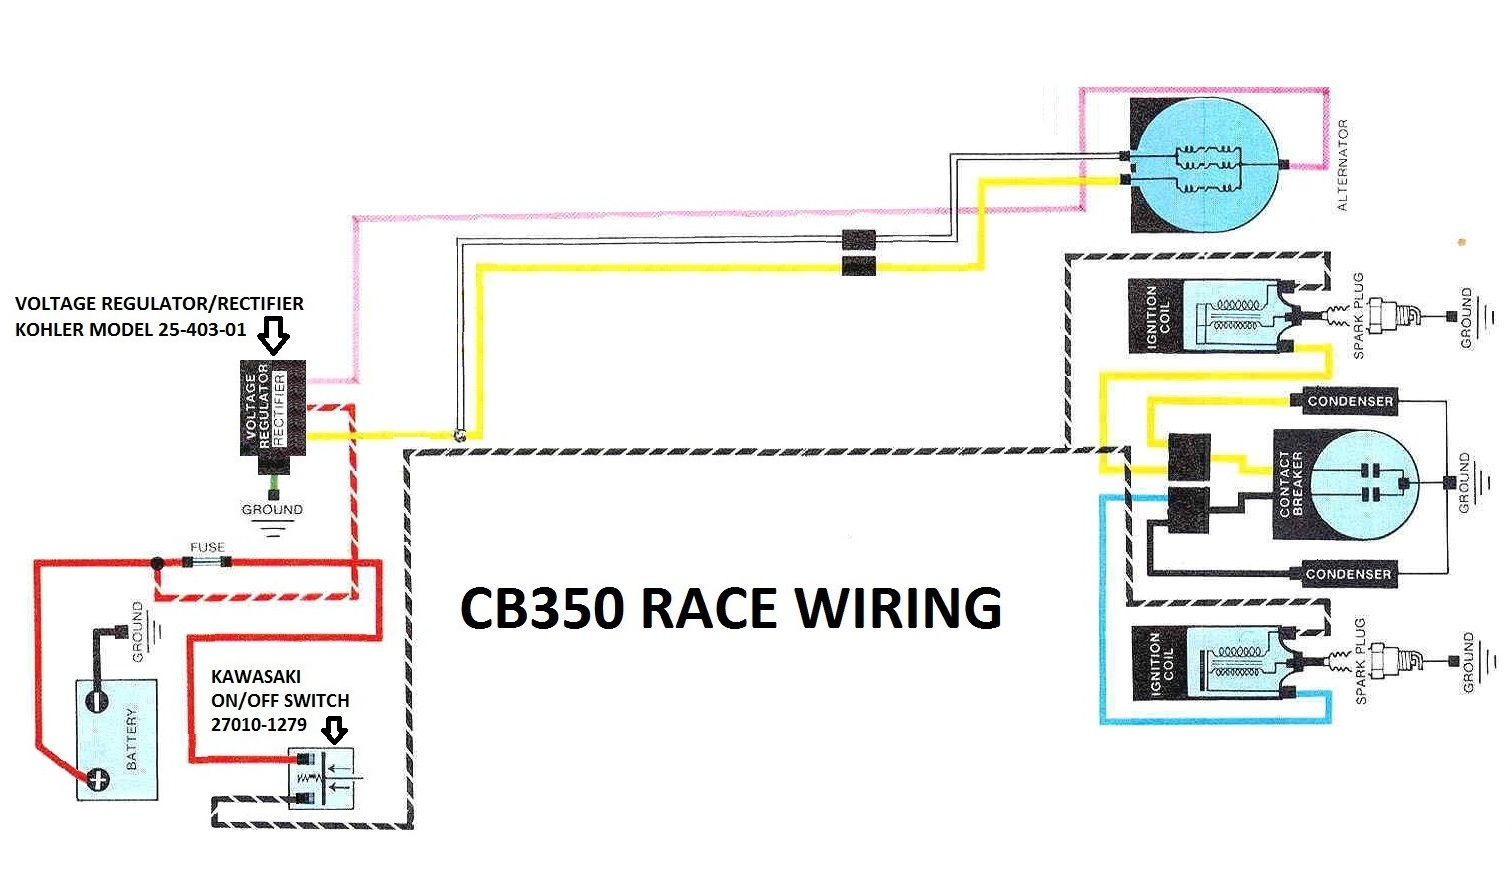 Racing Ignition Wiring Library Rac Tachometer Diagram Cb350 Race A Question About Voltage Regulator